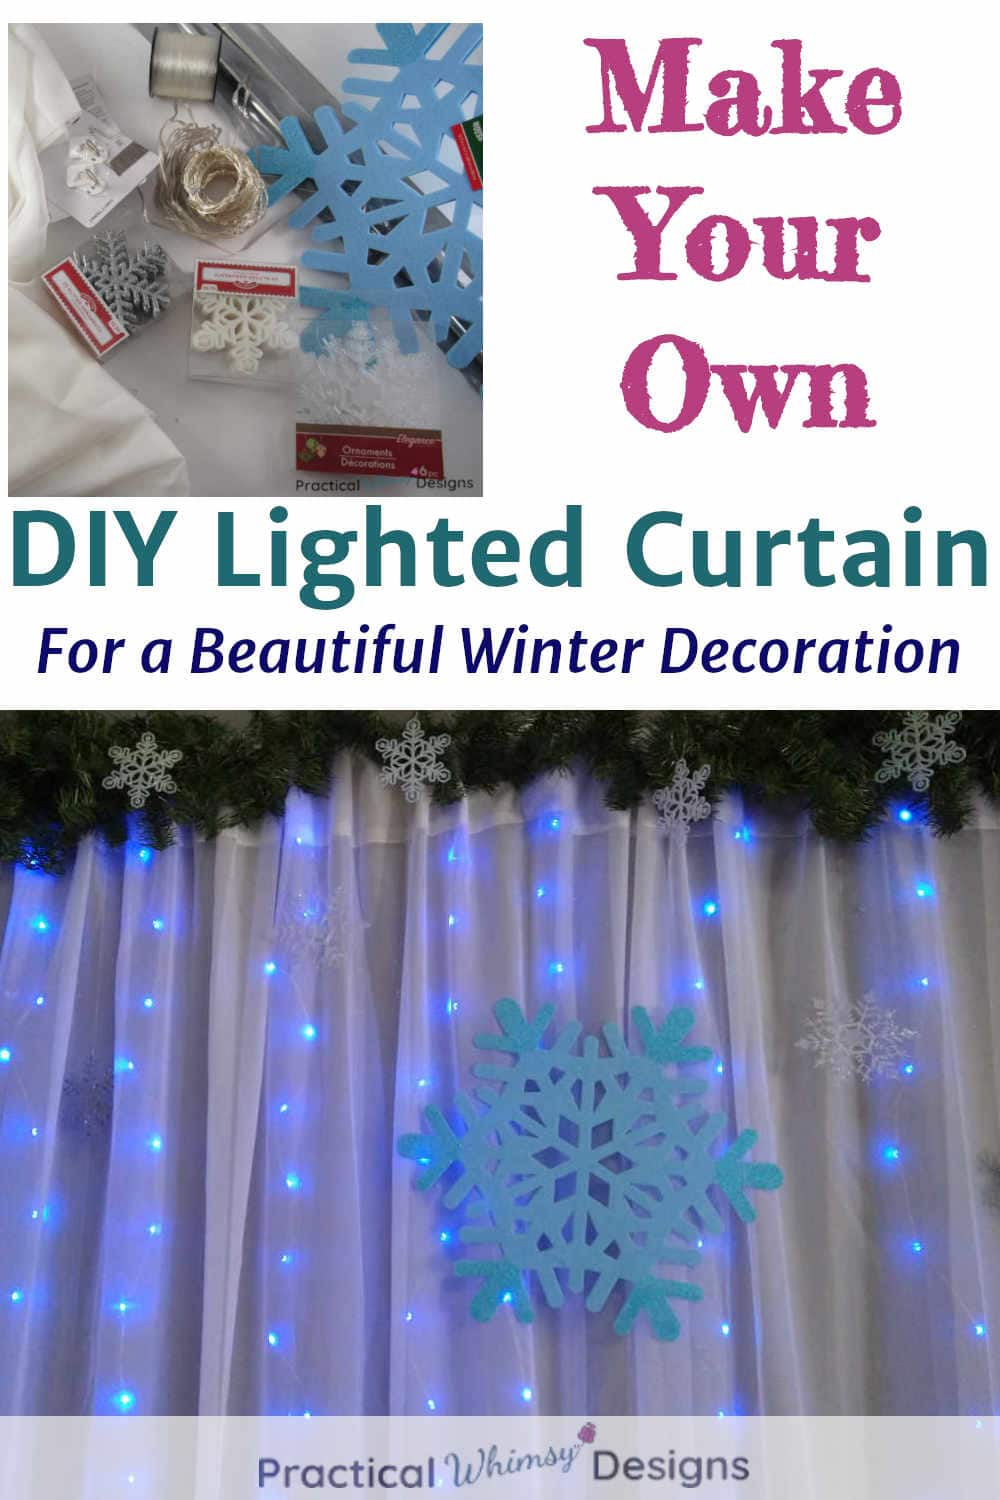 Make your own lighted snowflake curtain, Picture of supplies and finished curtain